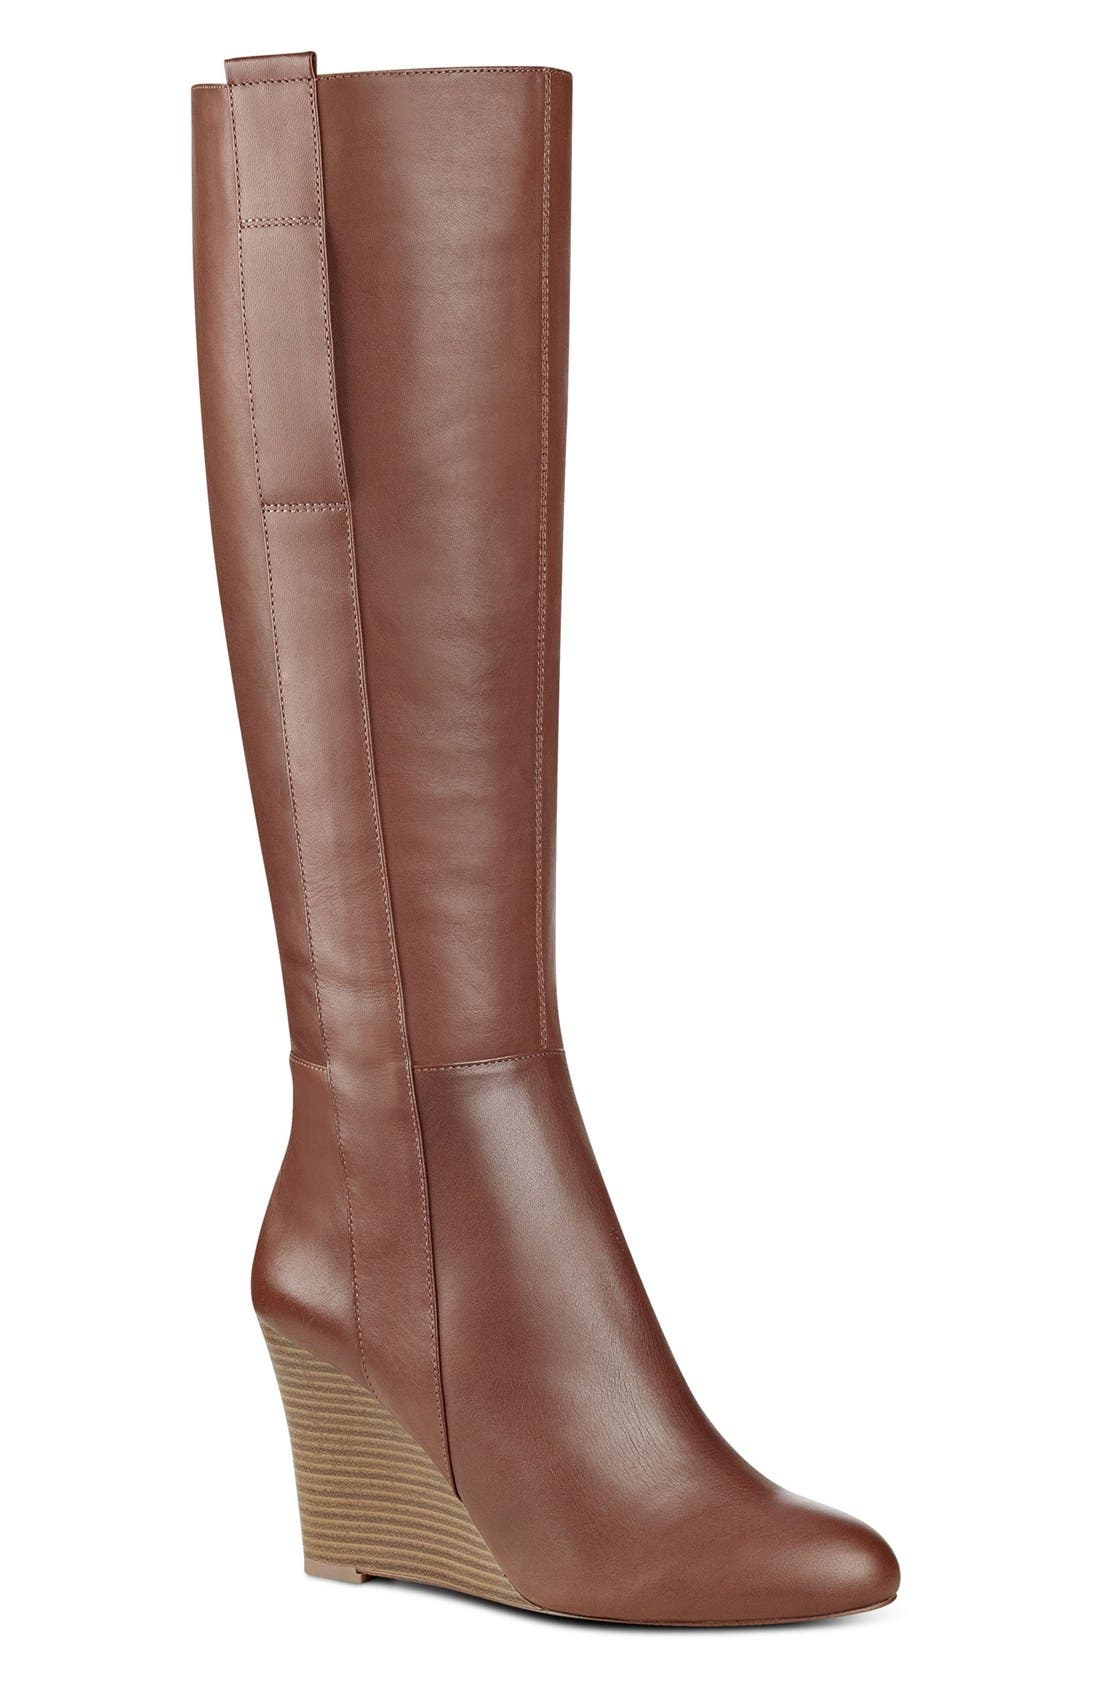 Main Image - Nine West Orsella Tall Wedge Boot (Women)